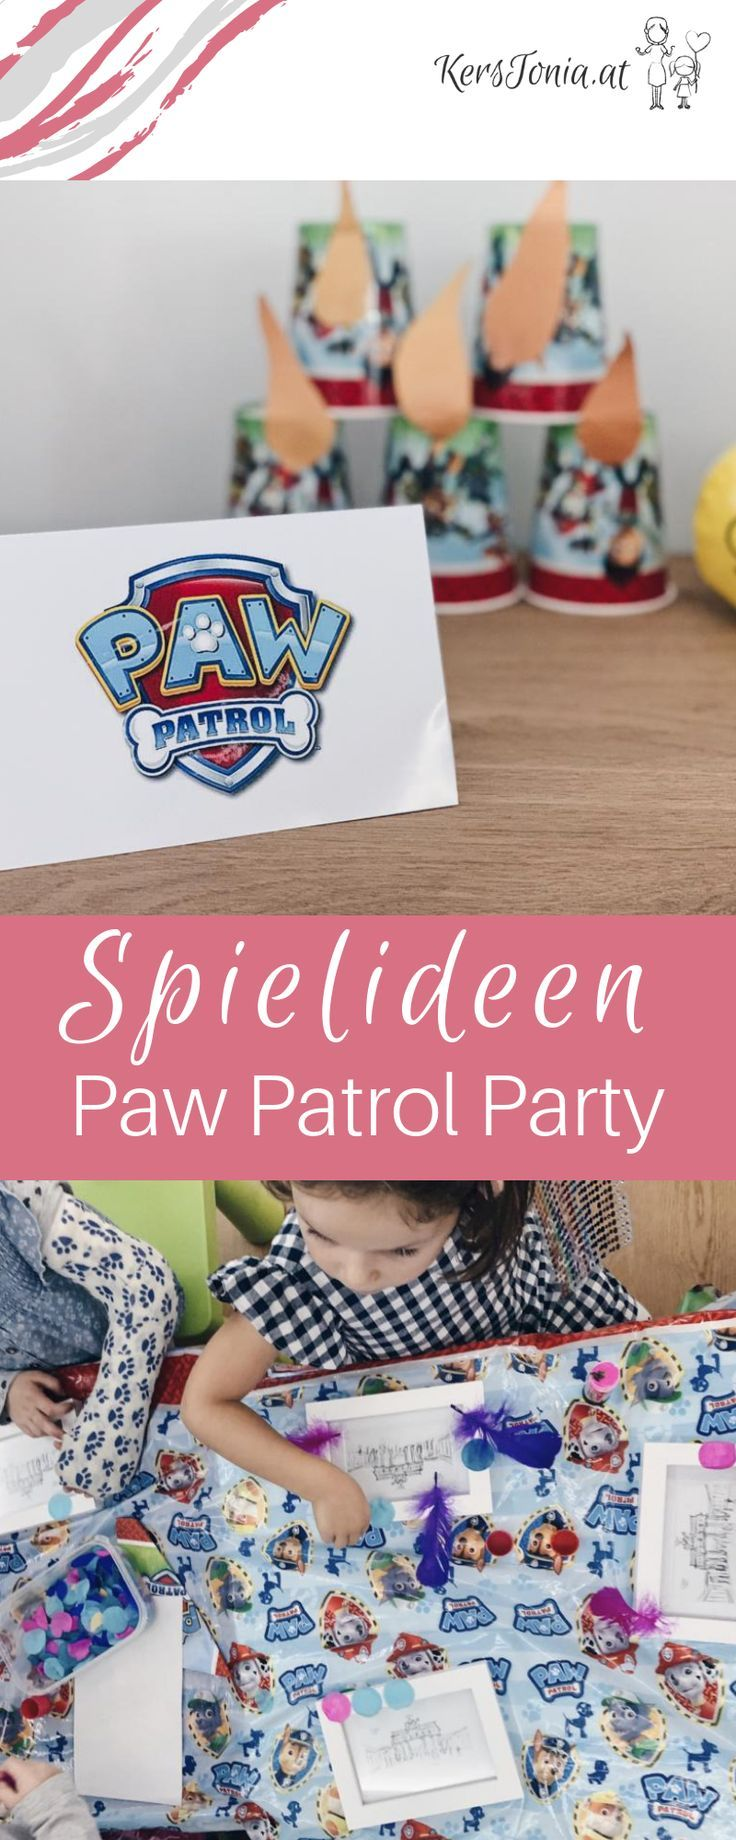 Paw Patrol Kids Birthday: Ideas for the Perfect Fur Friend Party!